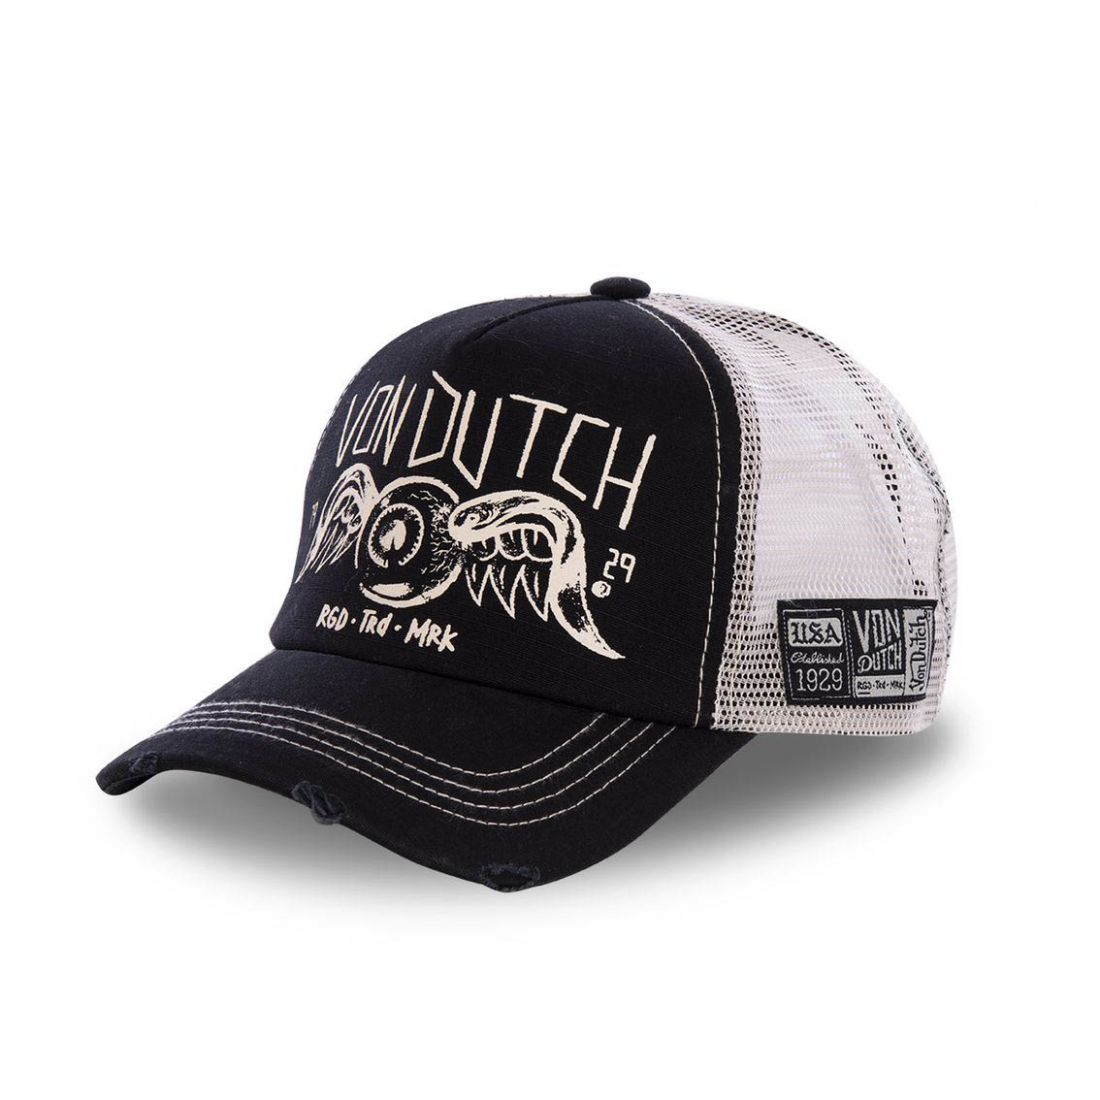 Casquette Trucker homme filet Von Dutch Crew Noir